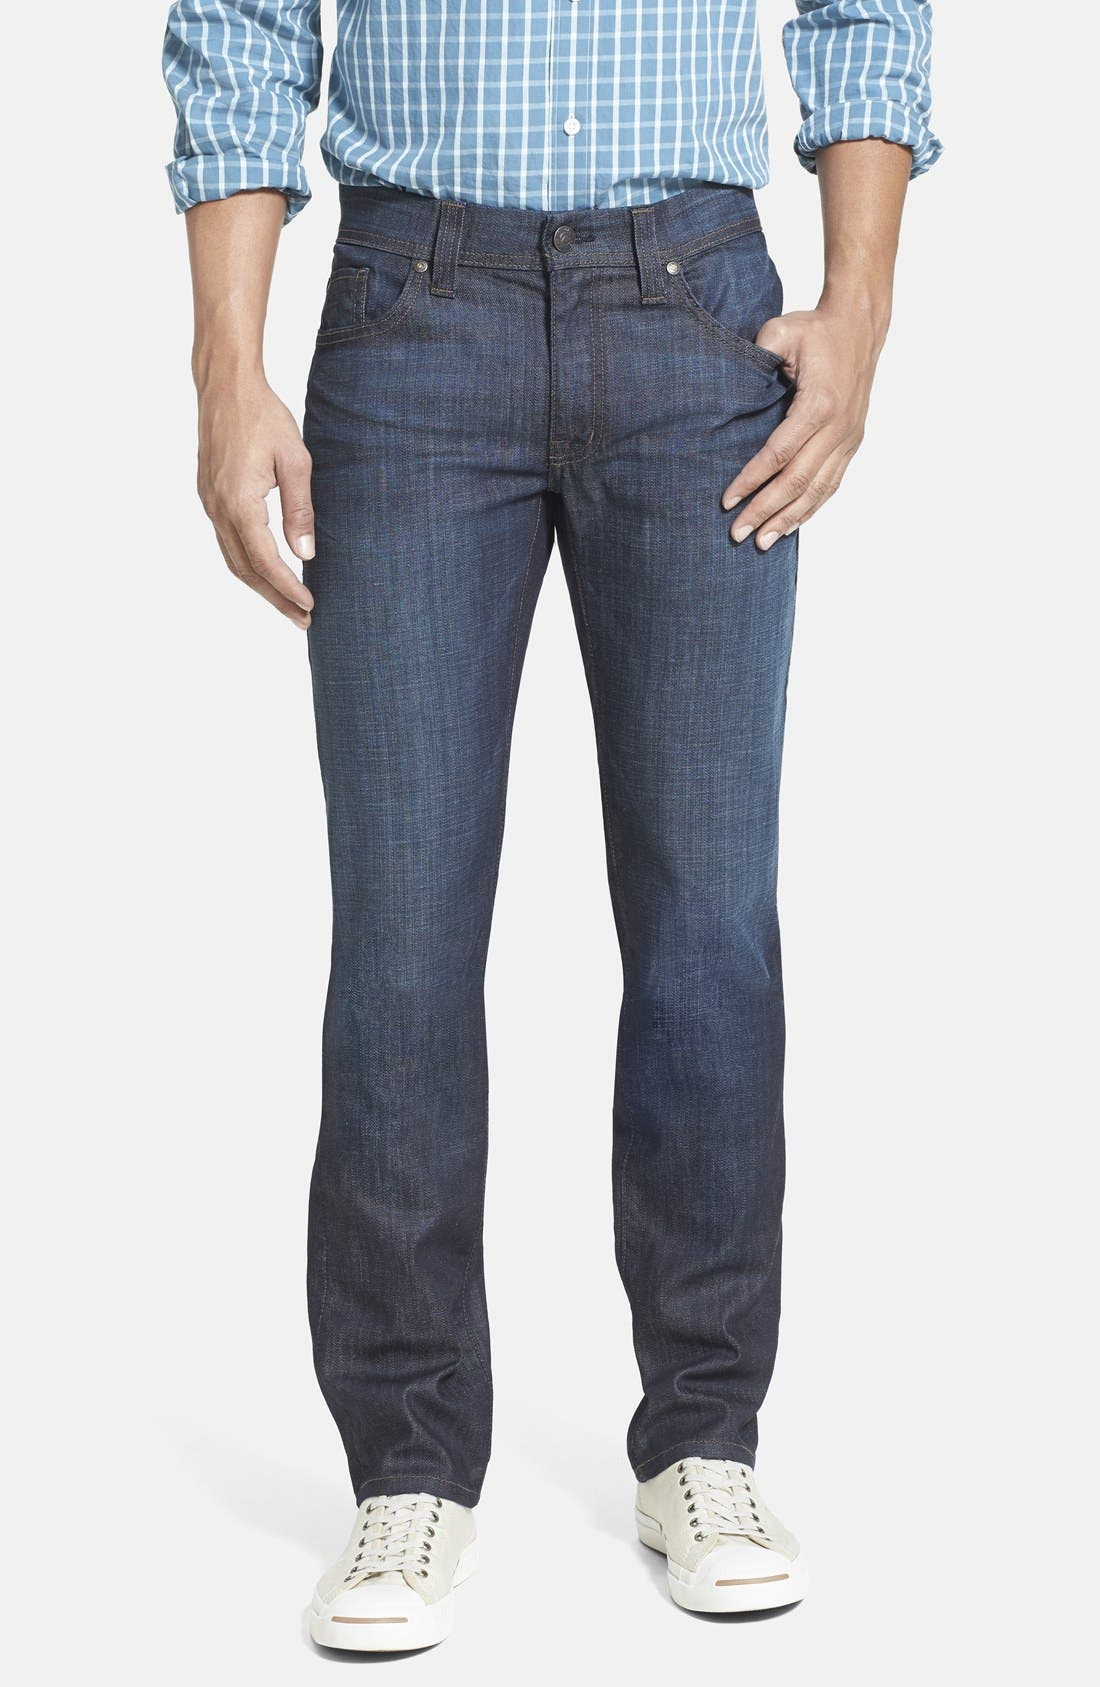 'Jimmy' Slim Straight Leg Jeans,                         Main,                         color,